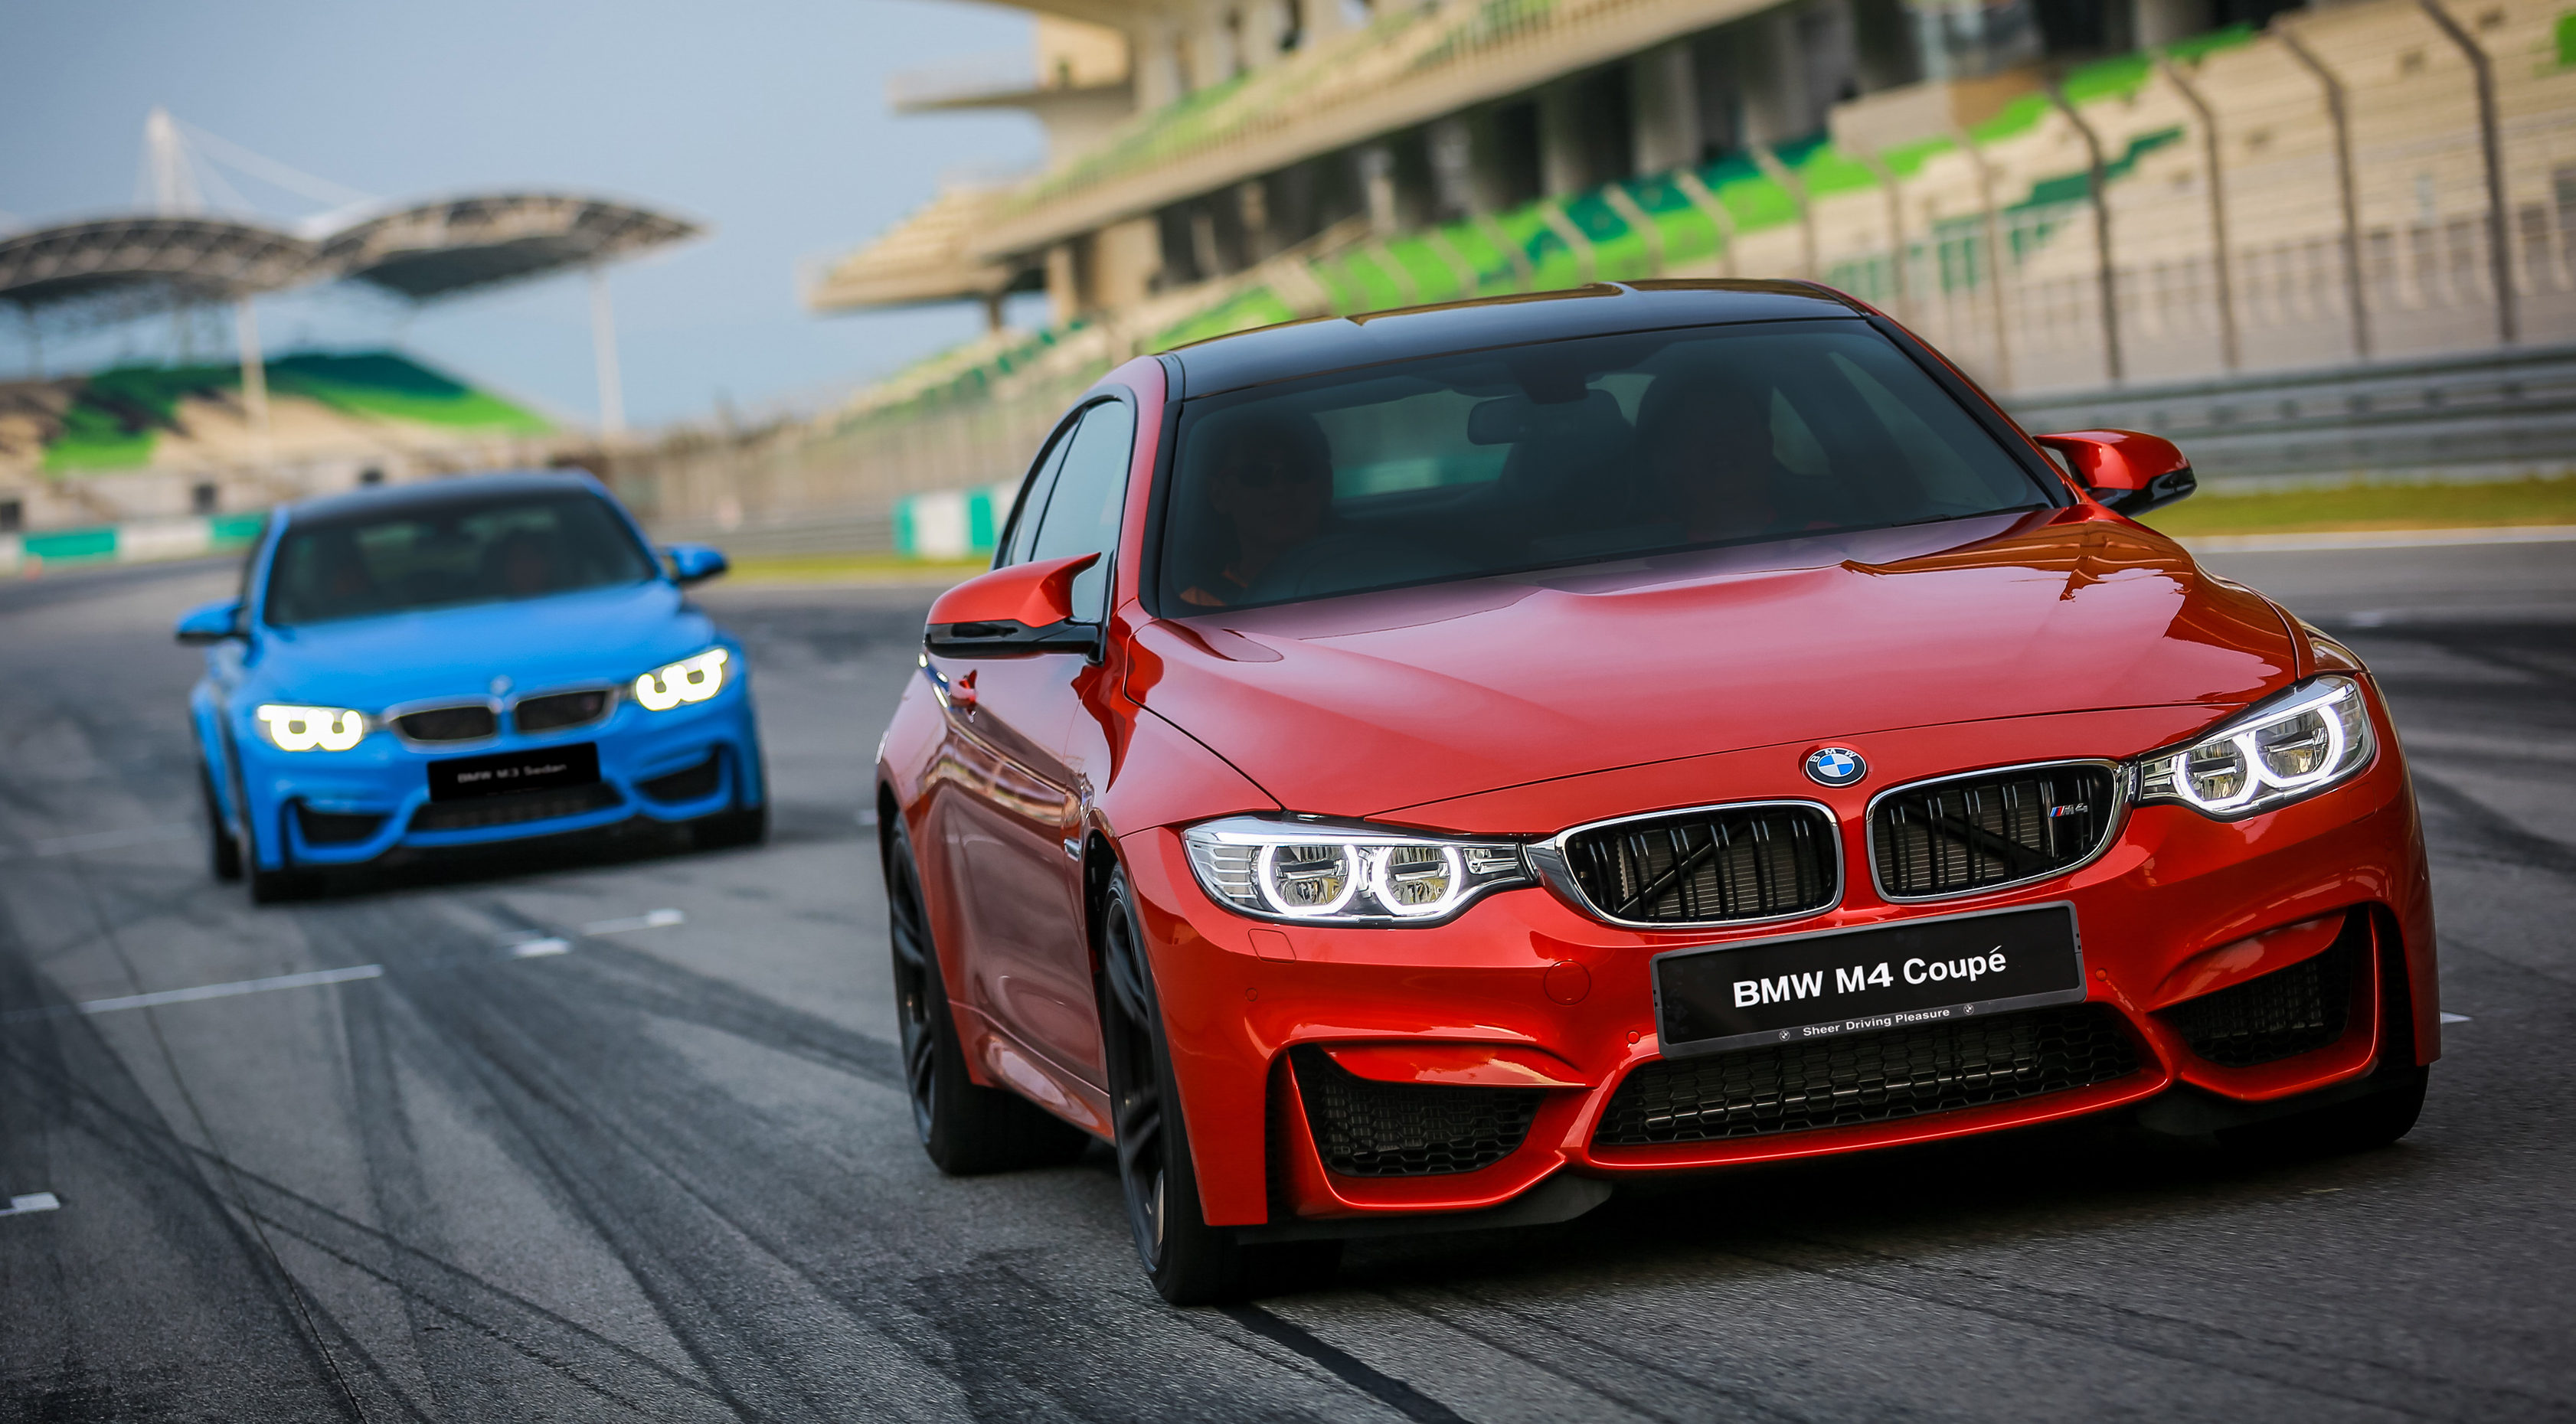 2014 F80 Bmw M3 Sedan And F82 Bmw M4 Coupe Introduced In